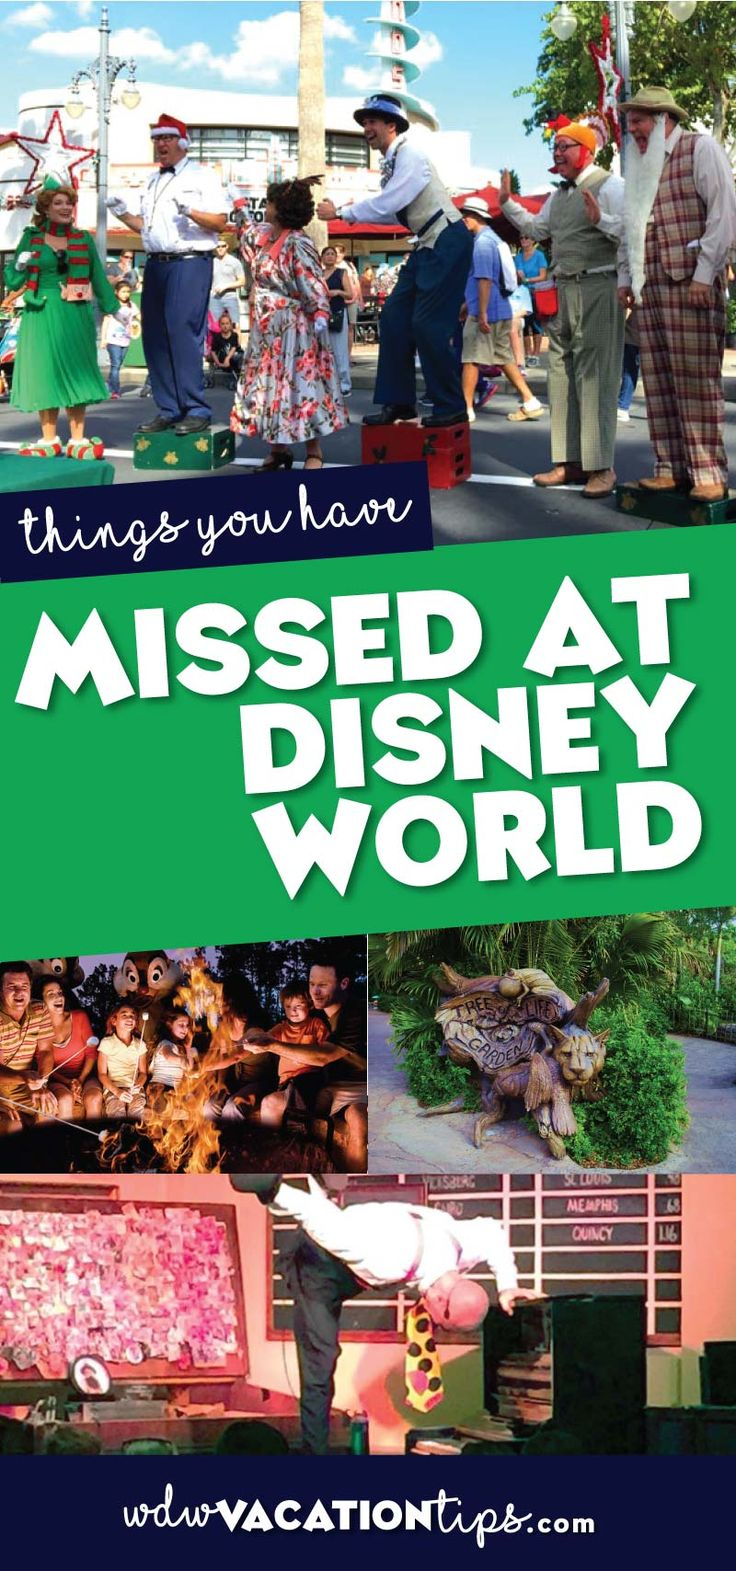 There is so much to do at Disney we found somecommonly overlooked or unknown experiences that people should do at Disney. So here are ten interesting things you probably have missed at Disney World!